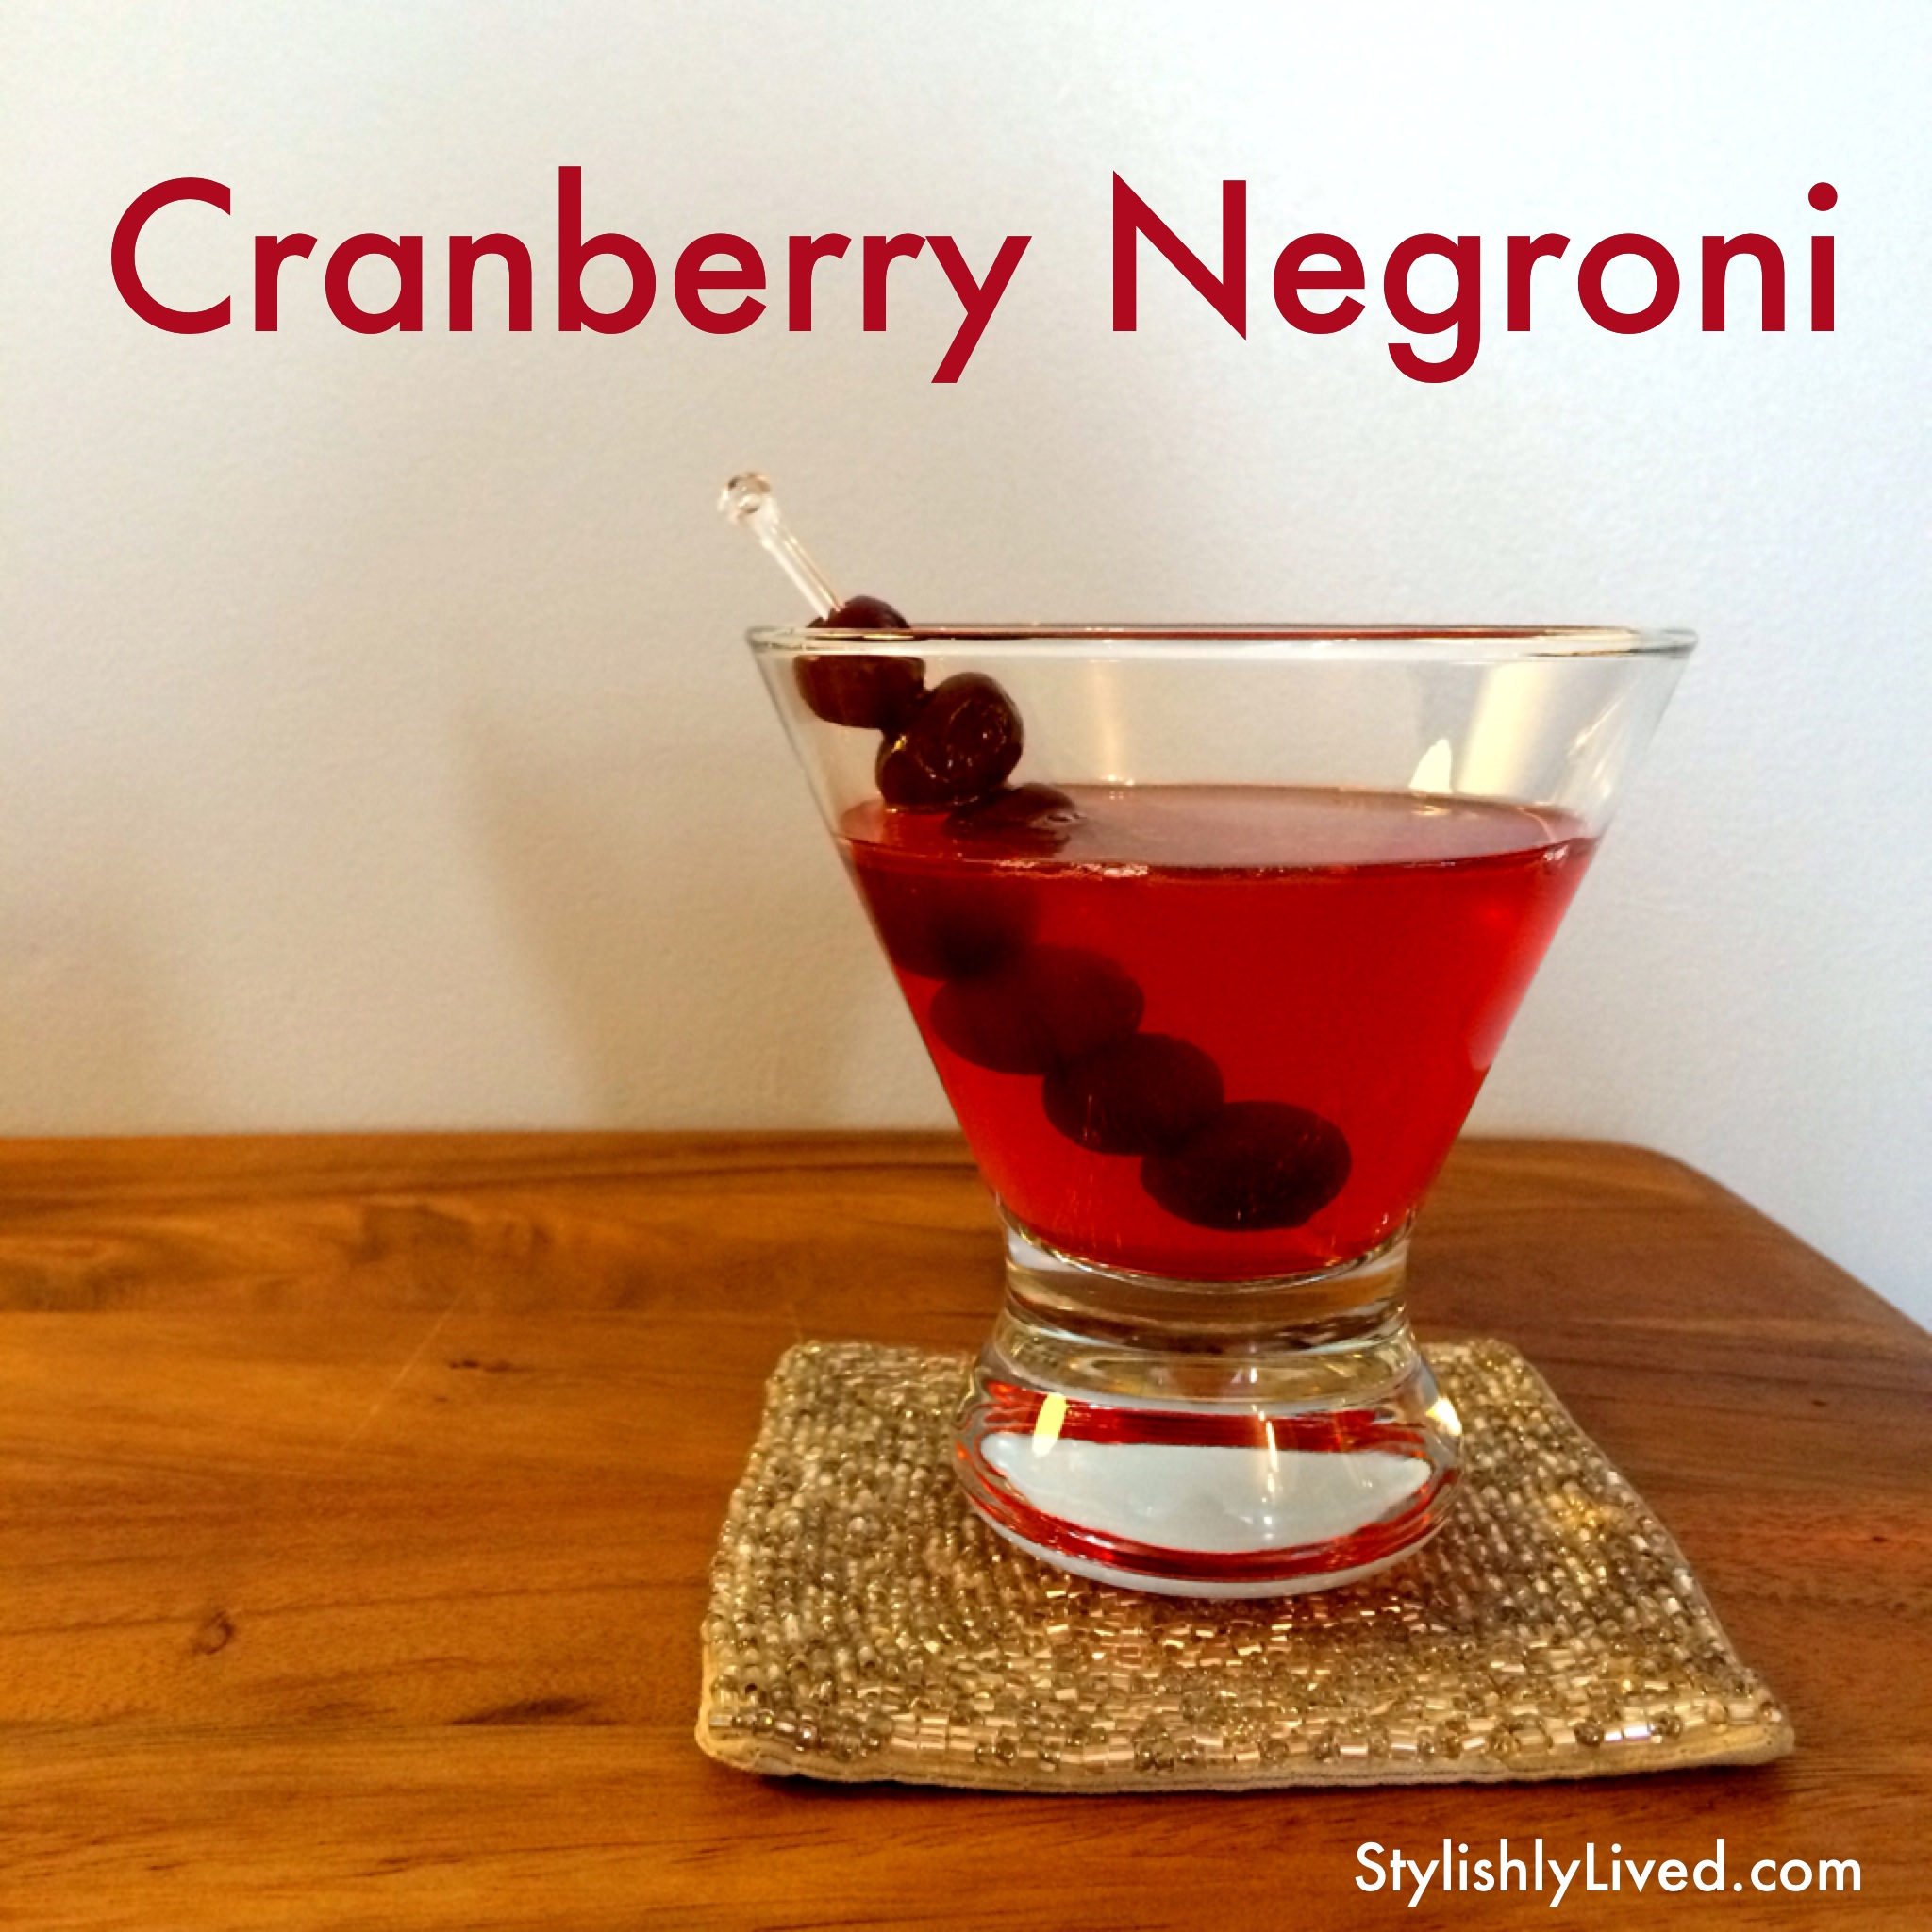 negroni marco polo negroni east indian negroni cocktail negroni ...